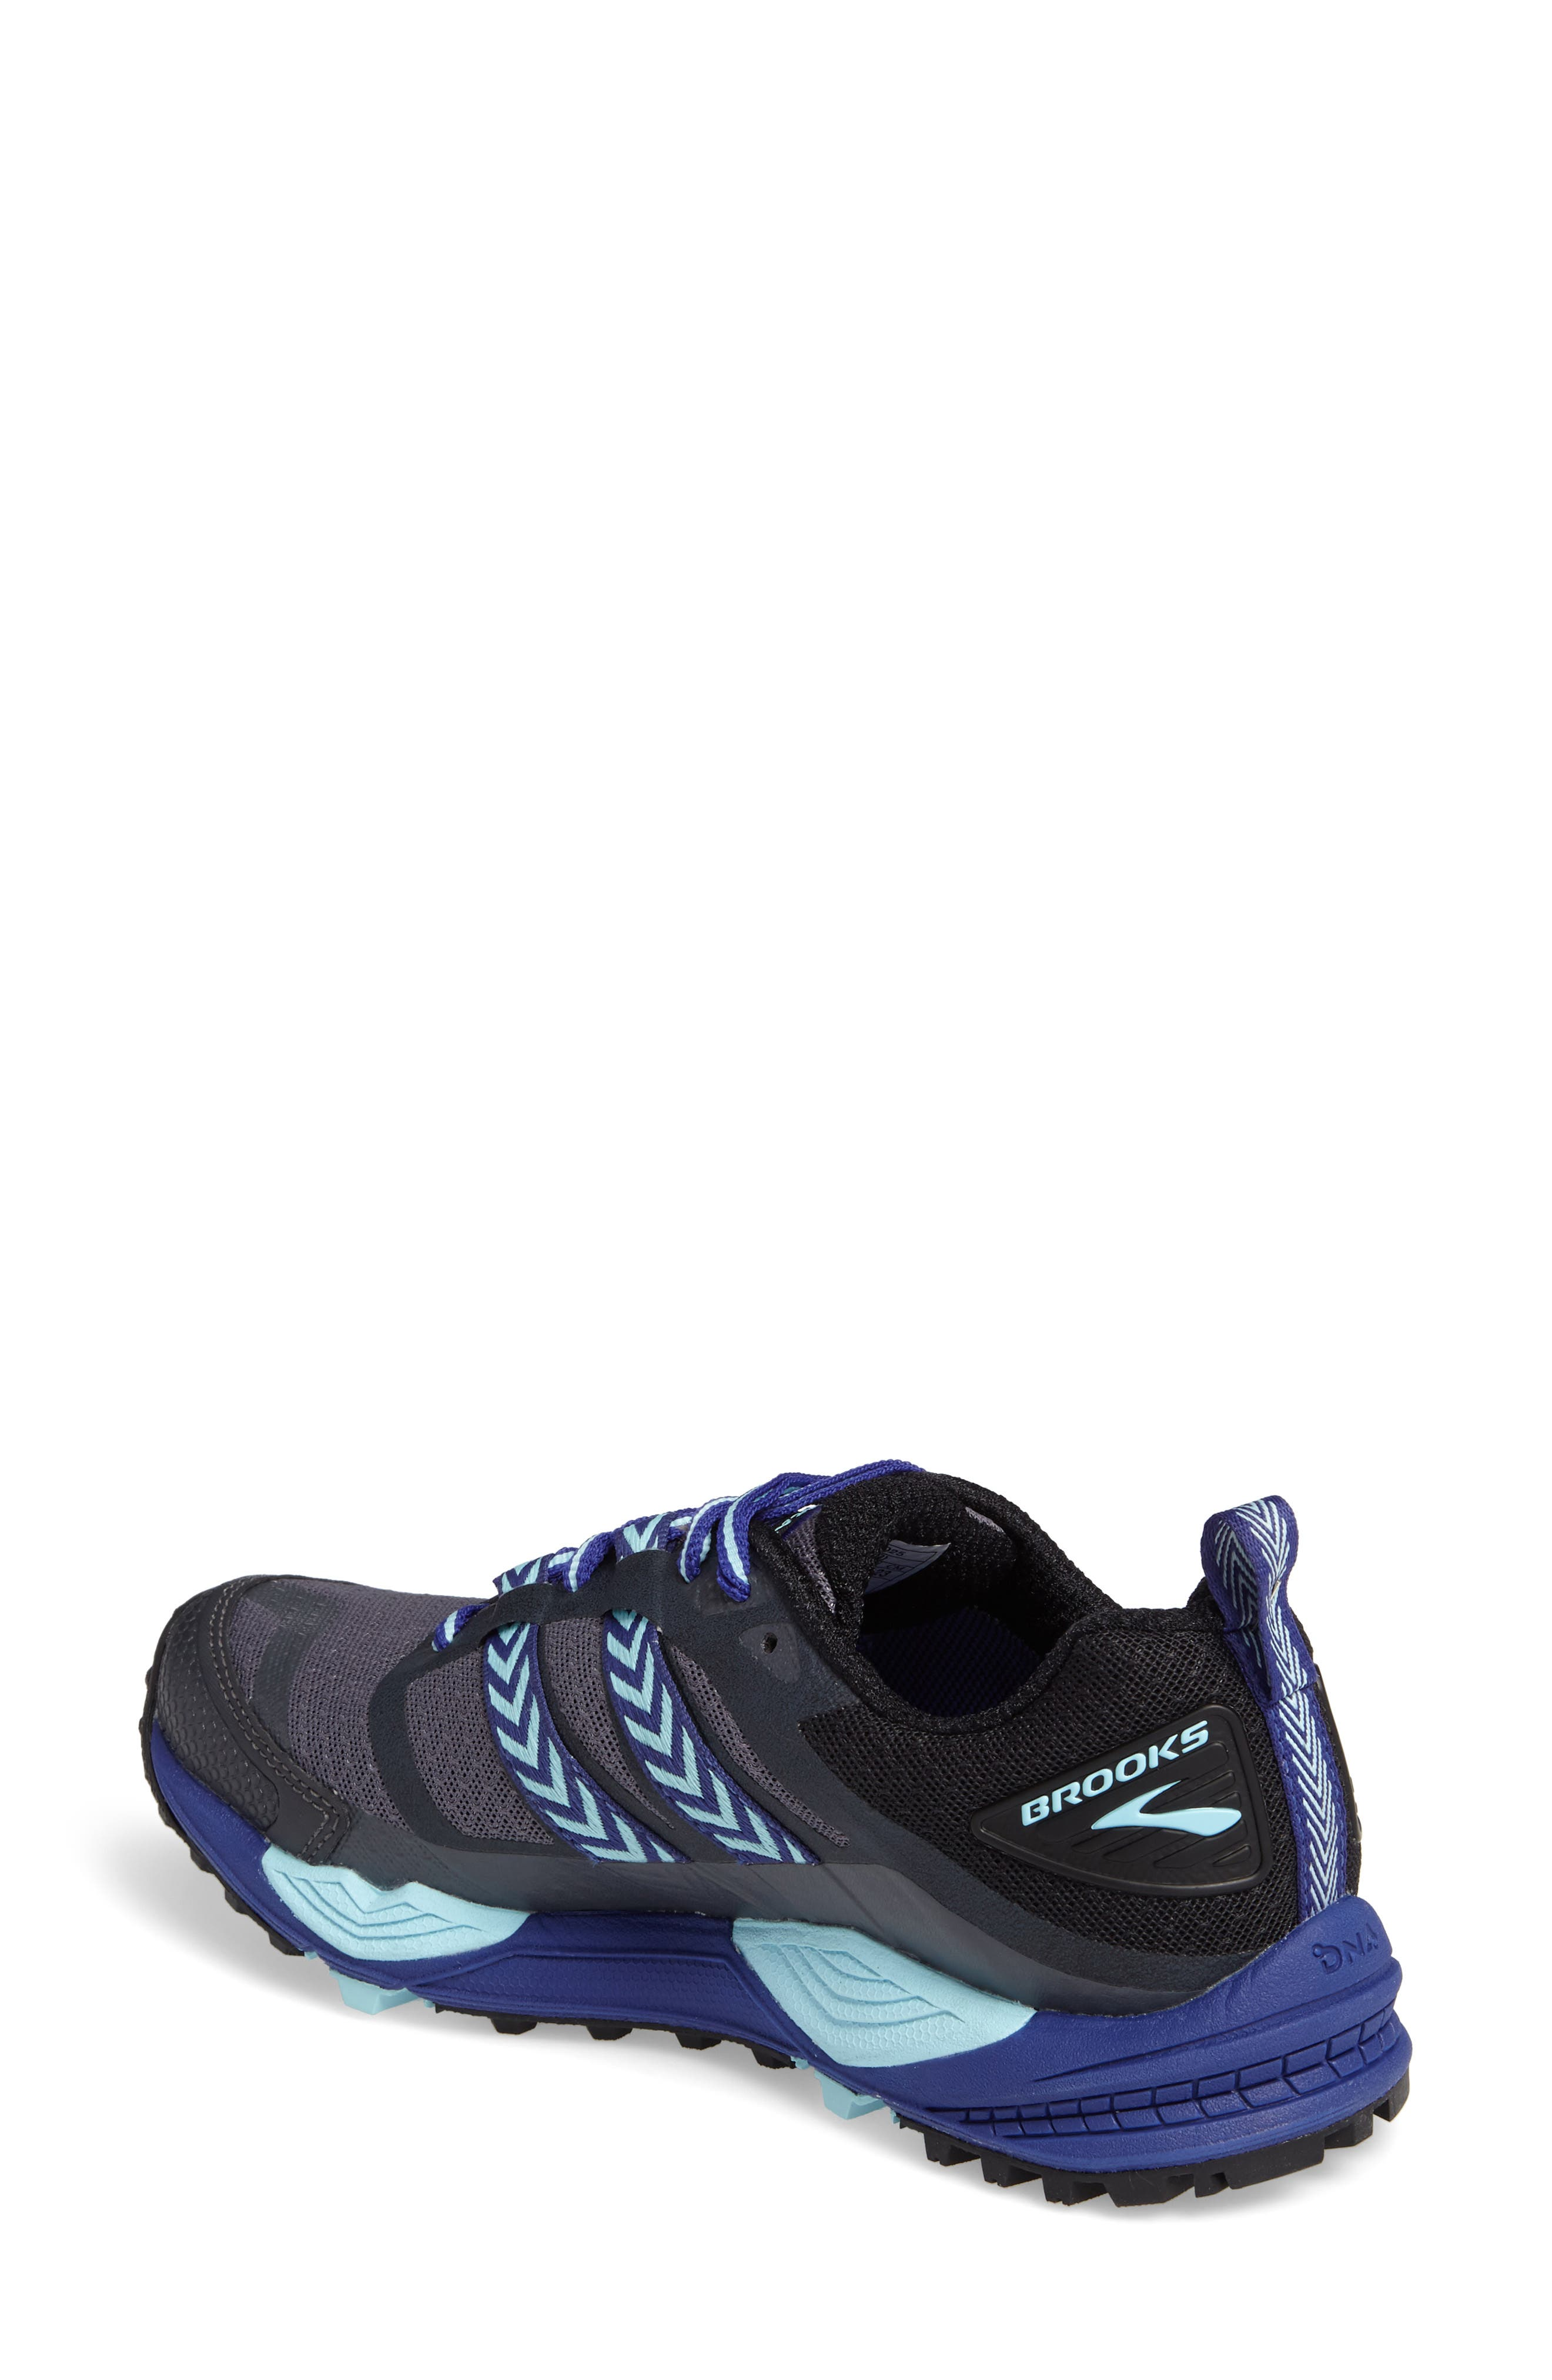 Cascadia 12 GTX Trail Running Shoe,                             Alternate thumbnail 2, color,                             001